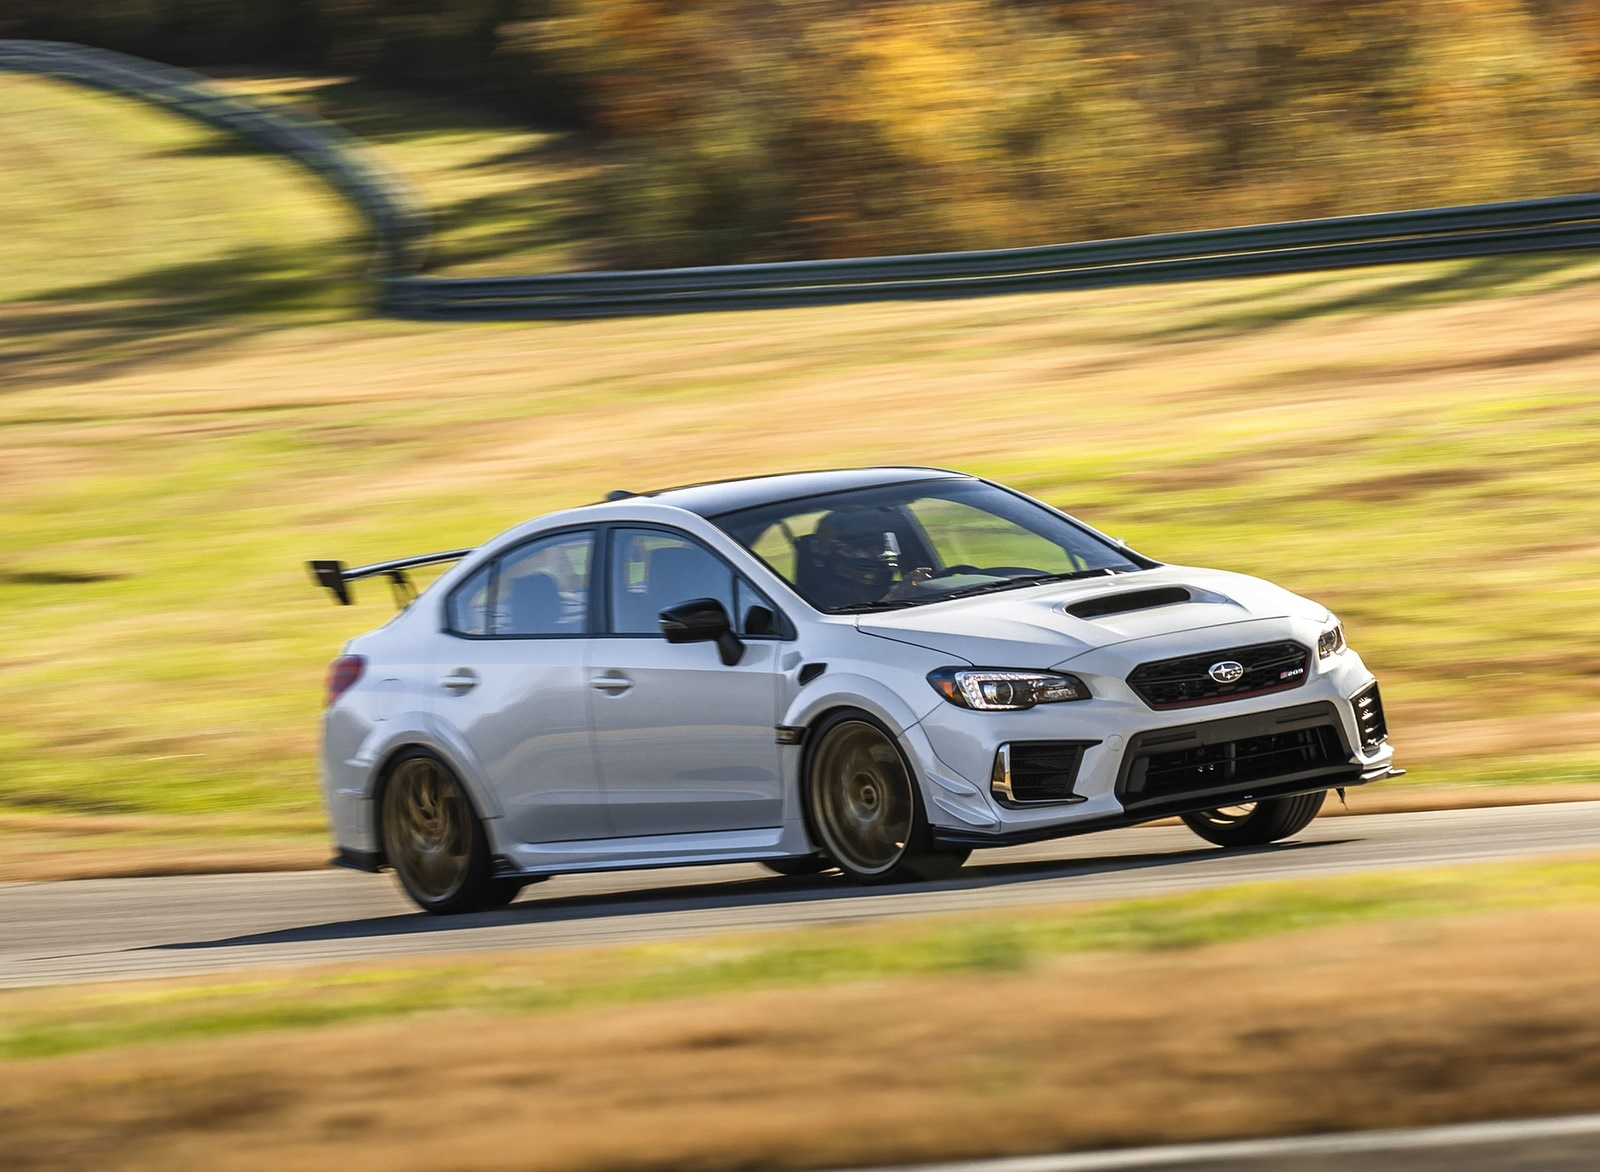 2019 Subaru WRX STI S209 Front Three-Quarter Wallpapers (15)